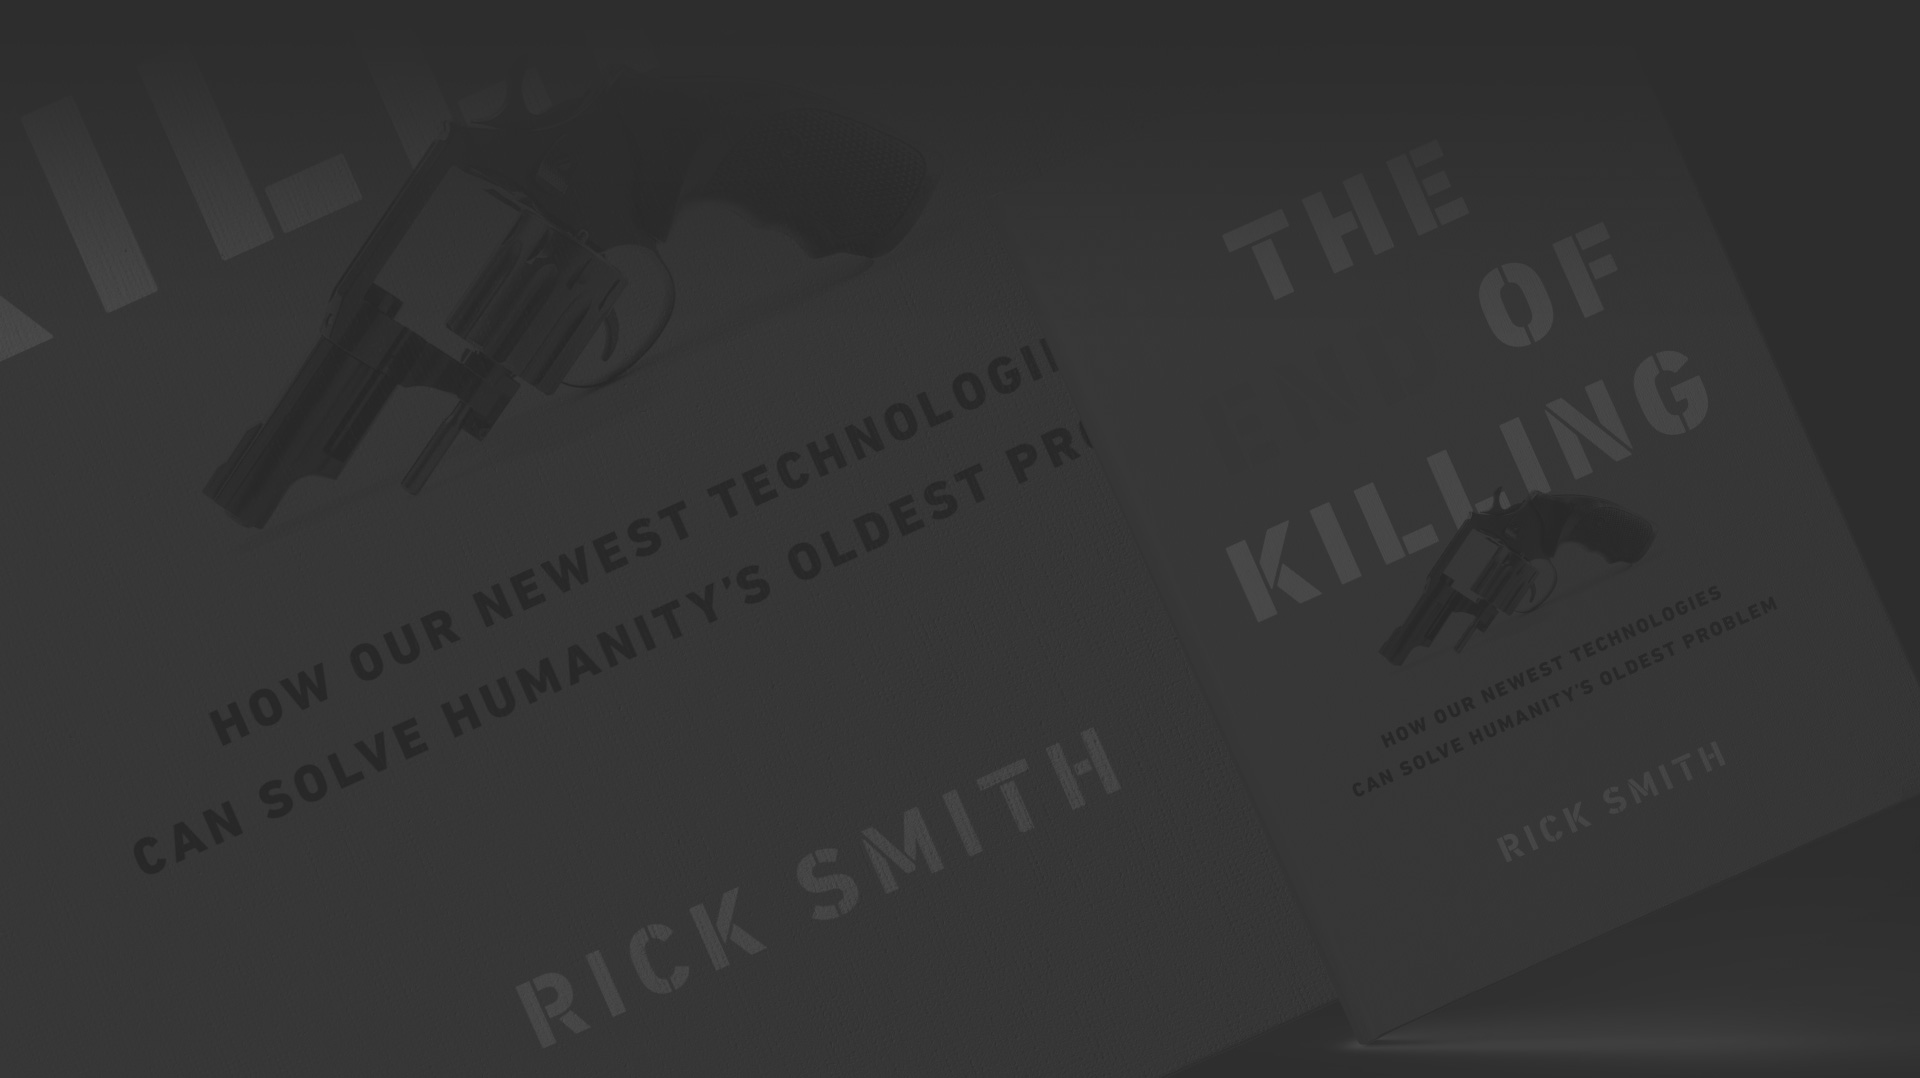 The End of Killing book | Rick Smith